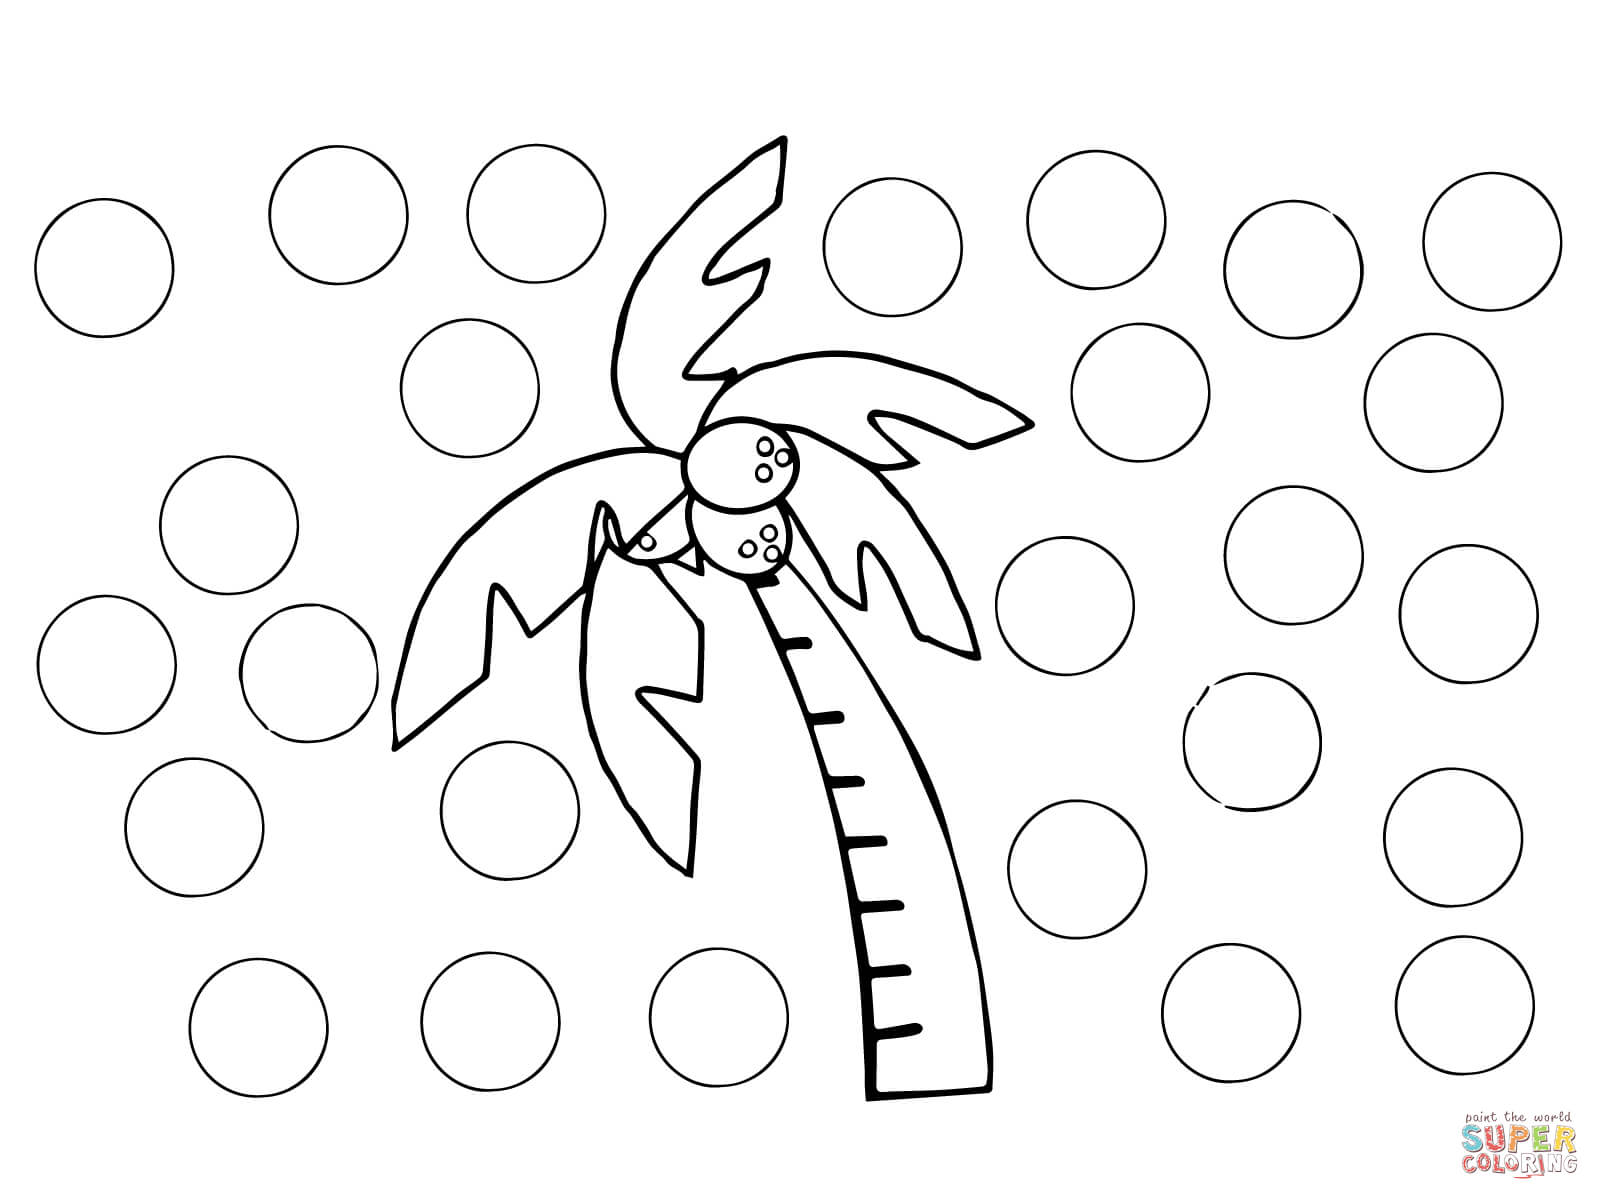 Chicka Chicka Boom Boom Blank Letters Coloring Page